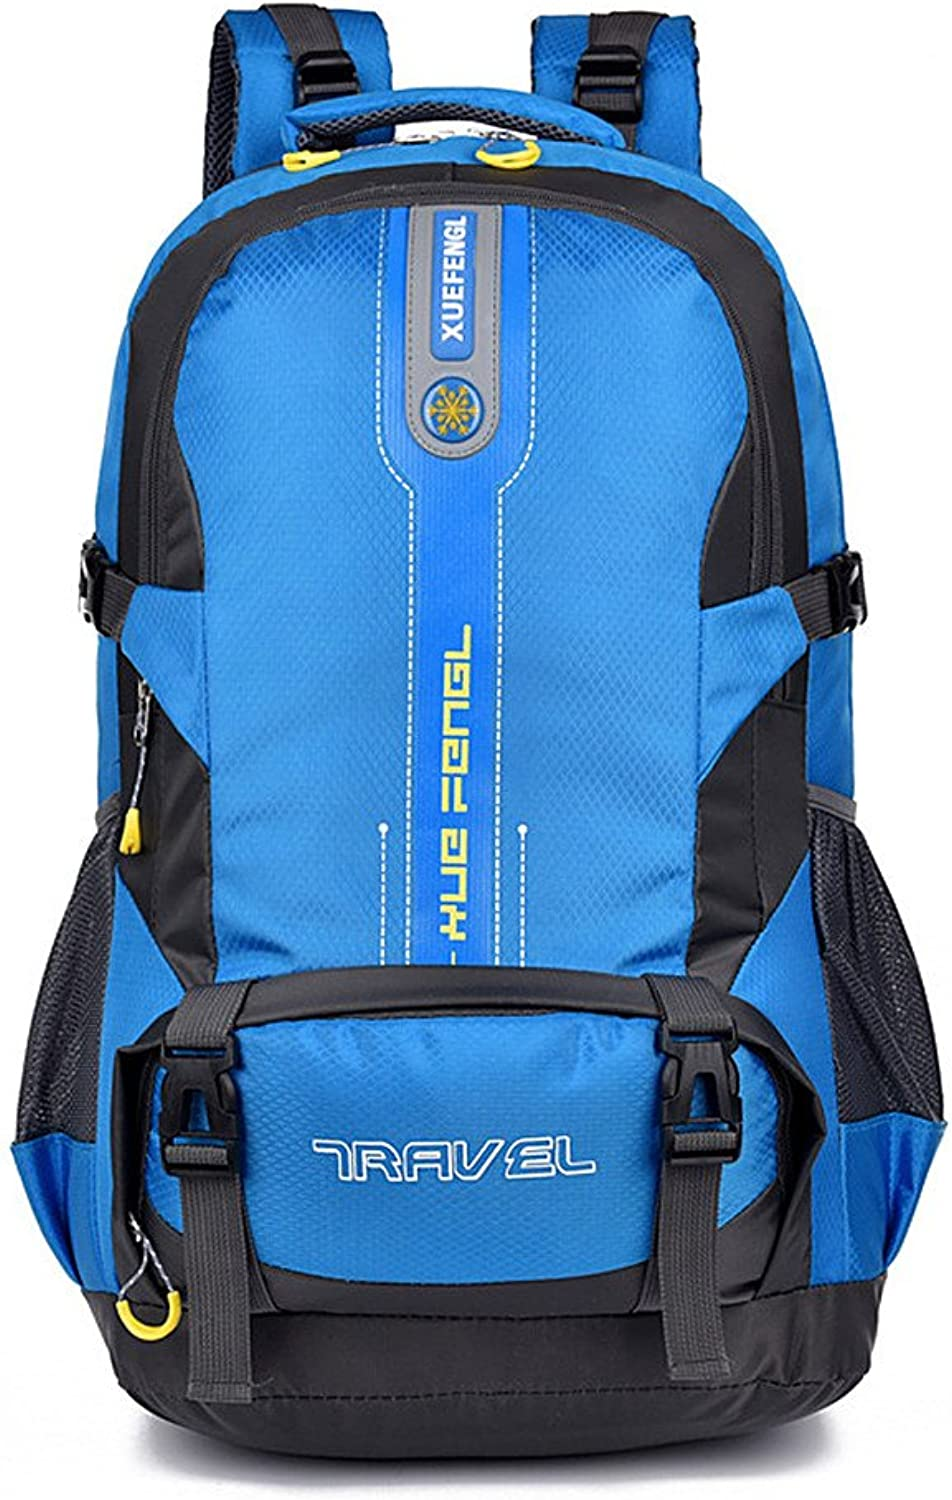 Backpacks Climbing Shoulder Climbing Backpack MultiFunction HighCapacity Travel Camping Backpack Suitable for Outdoor Sports Waterproof Mountaineering Bag (color   blueee)